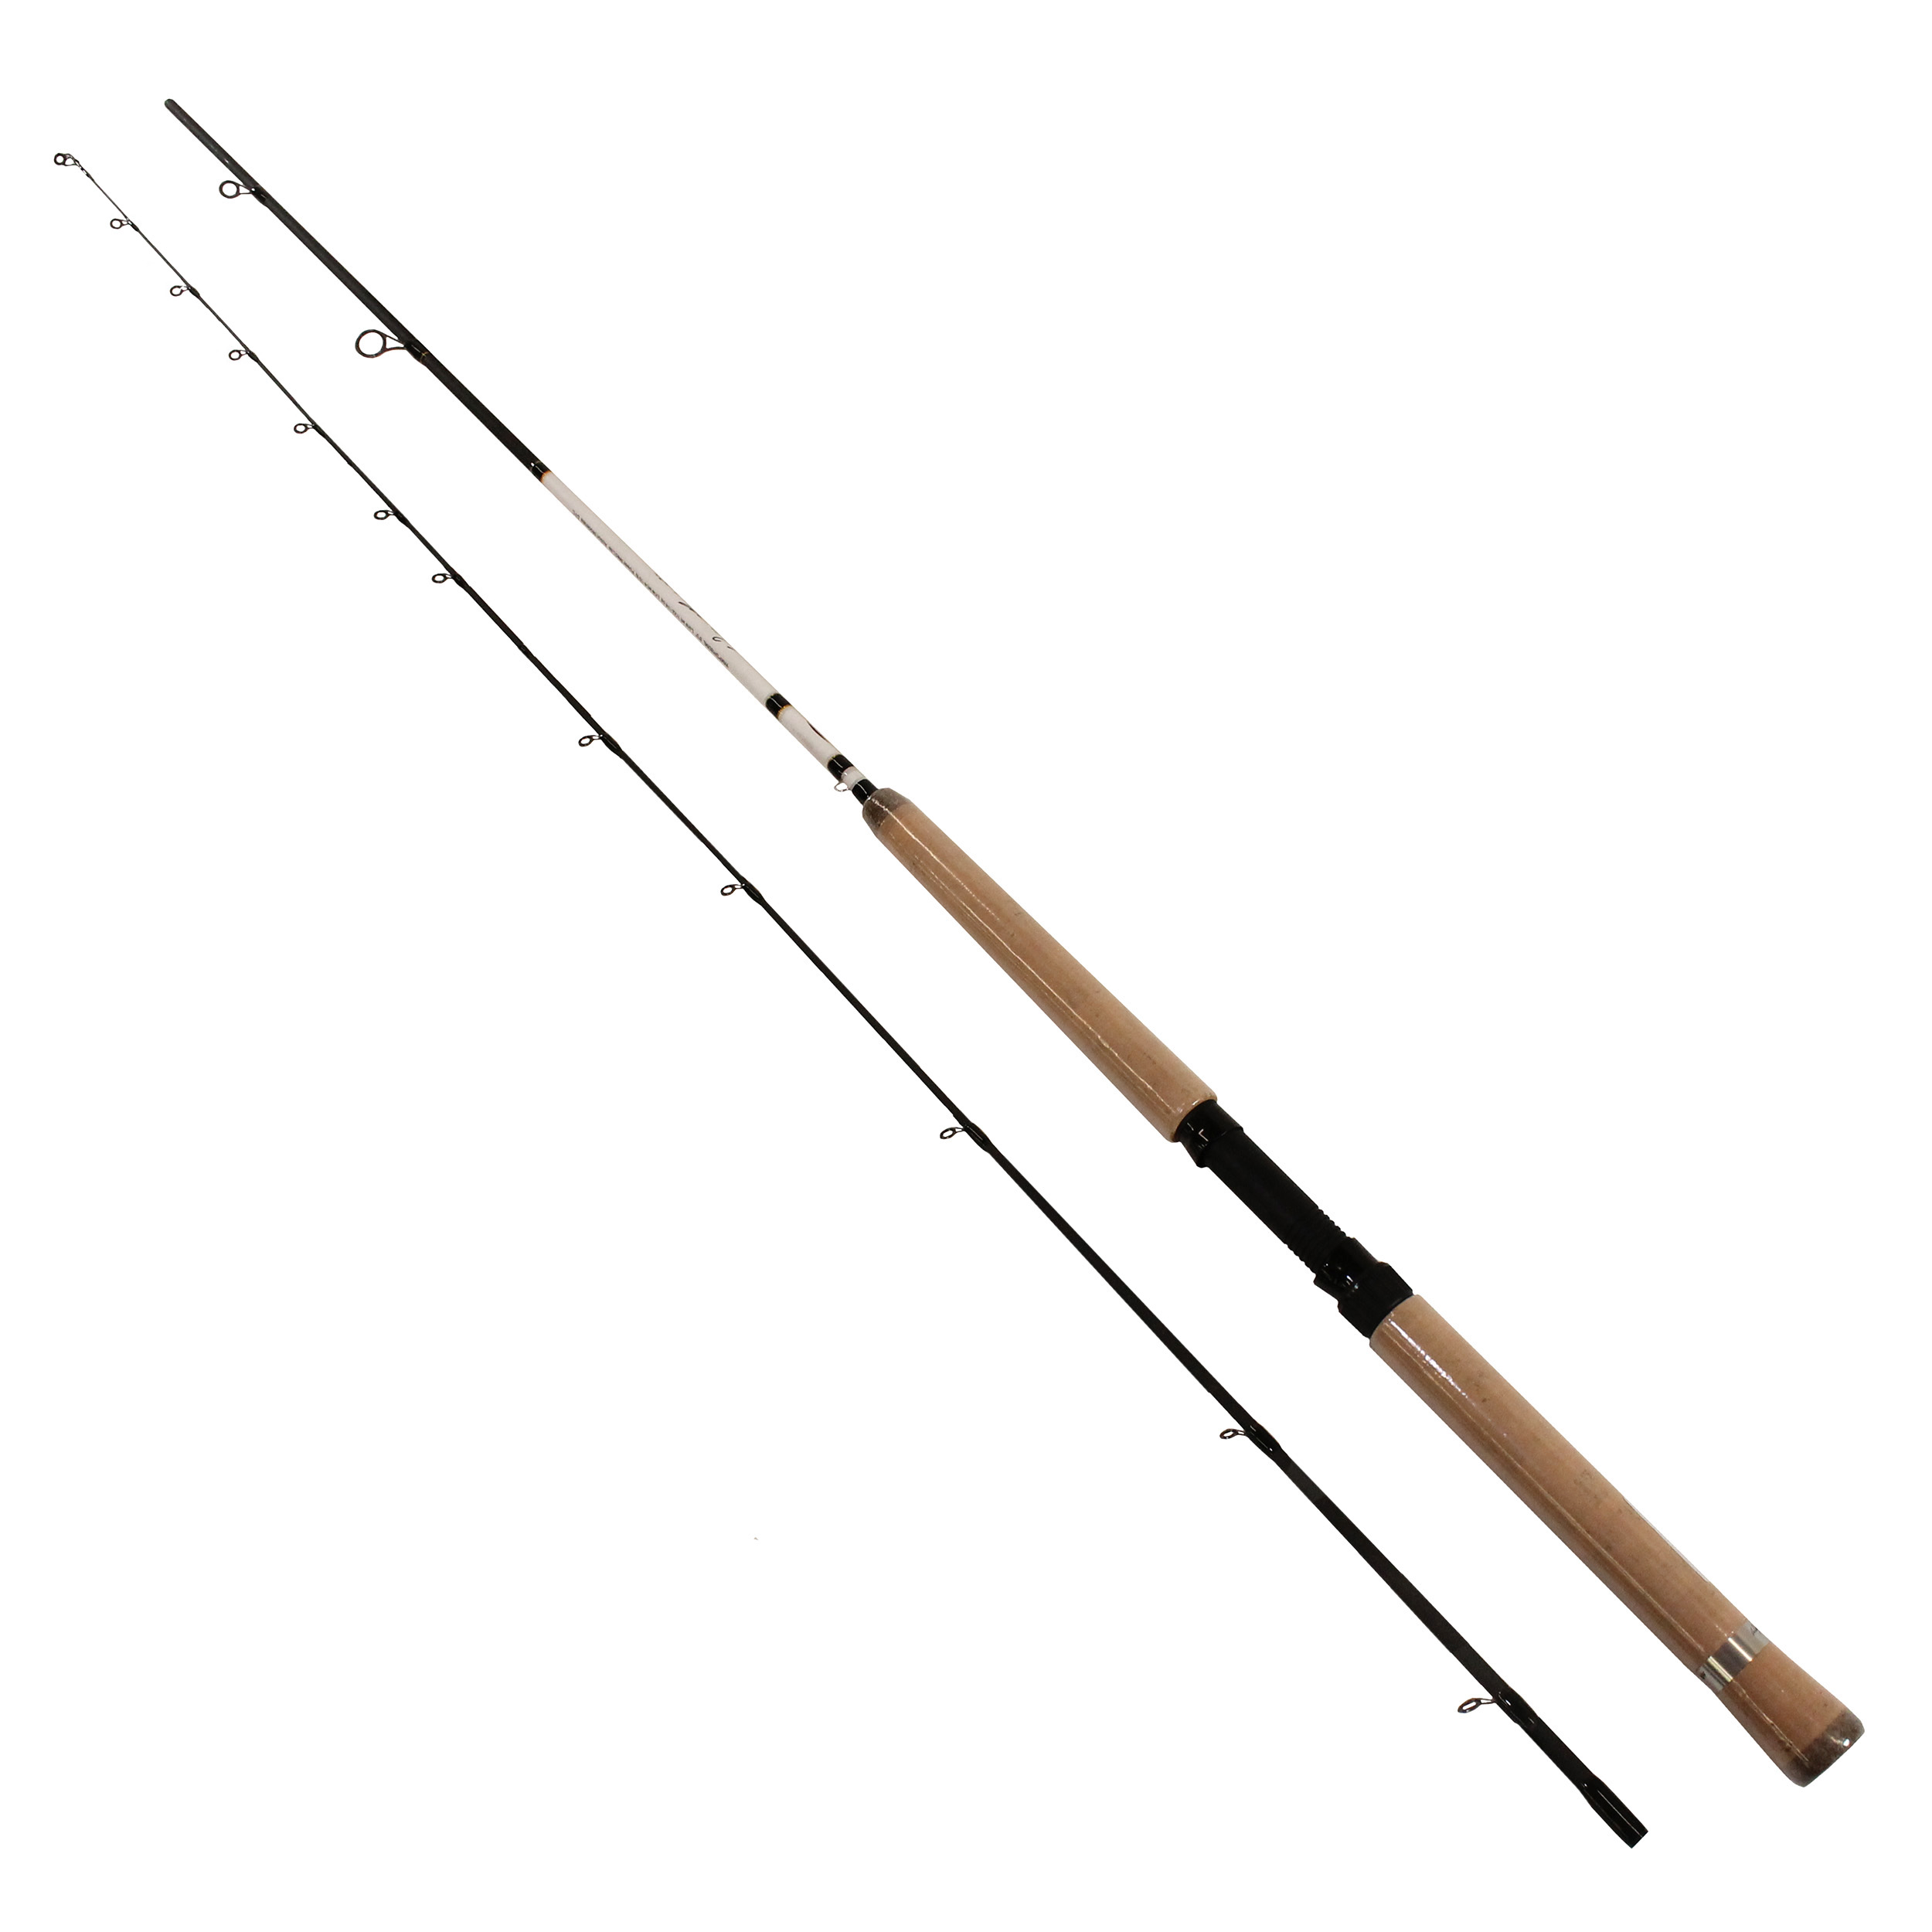 Lews Fishing Wally Marshall Pro Rod 11', 2 Piece, Medium/Light Power, Medium...